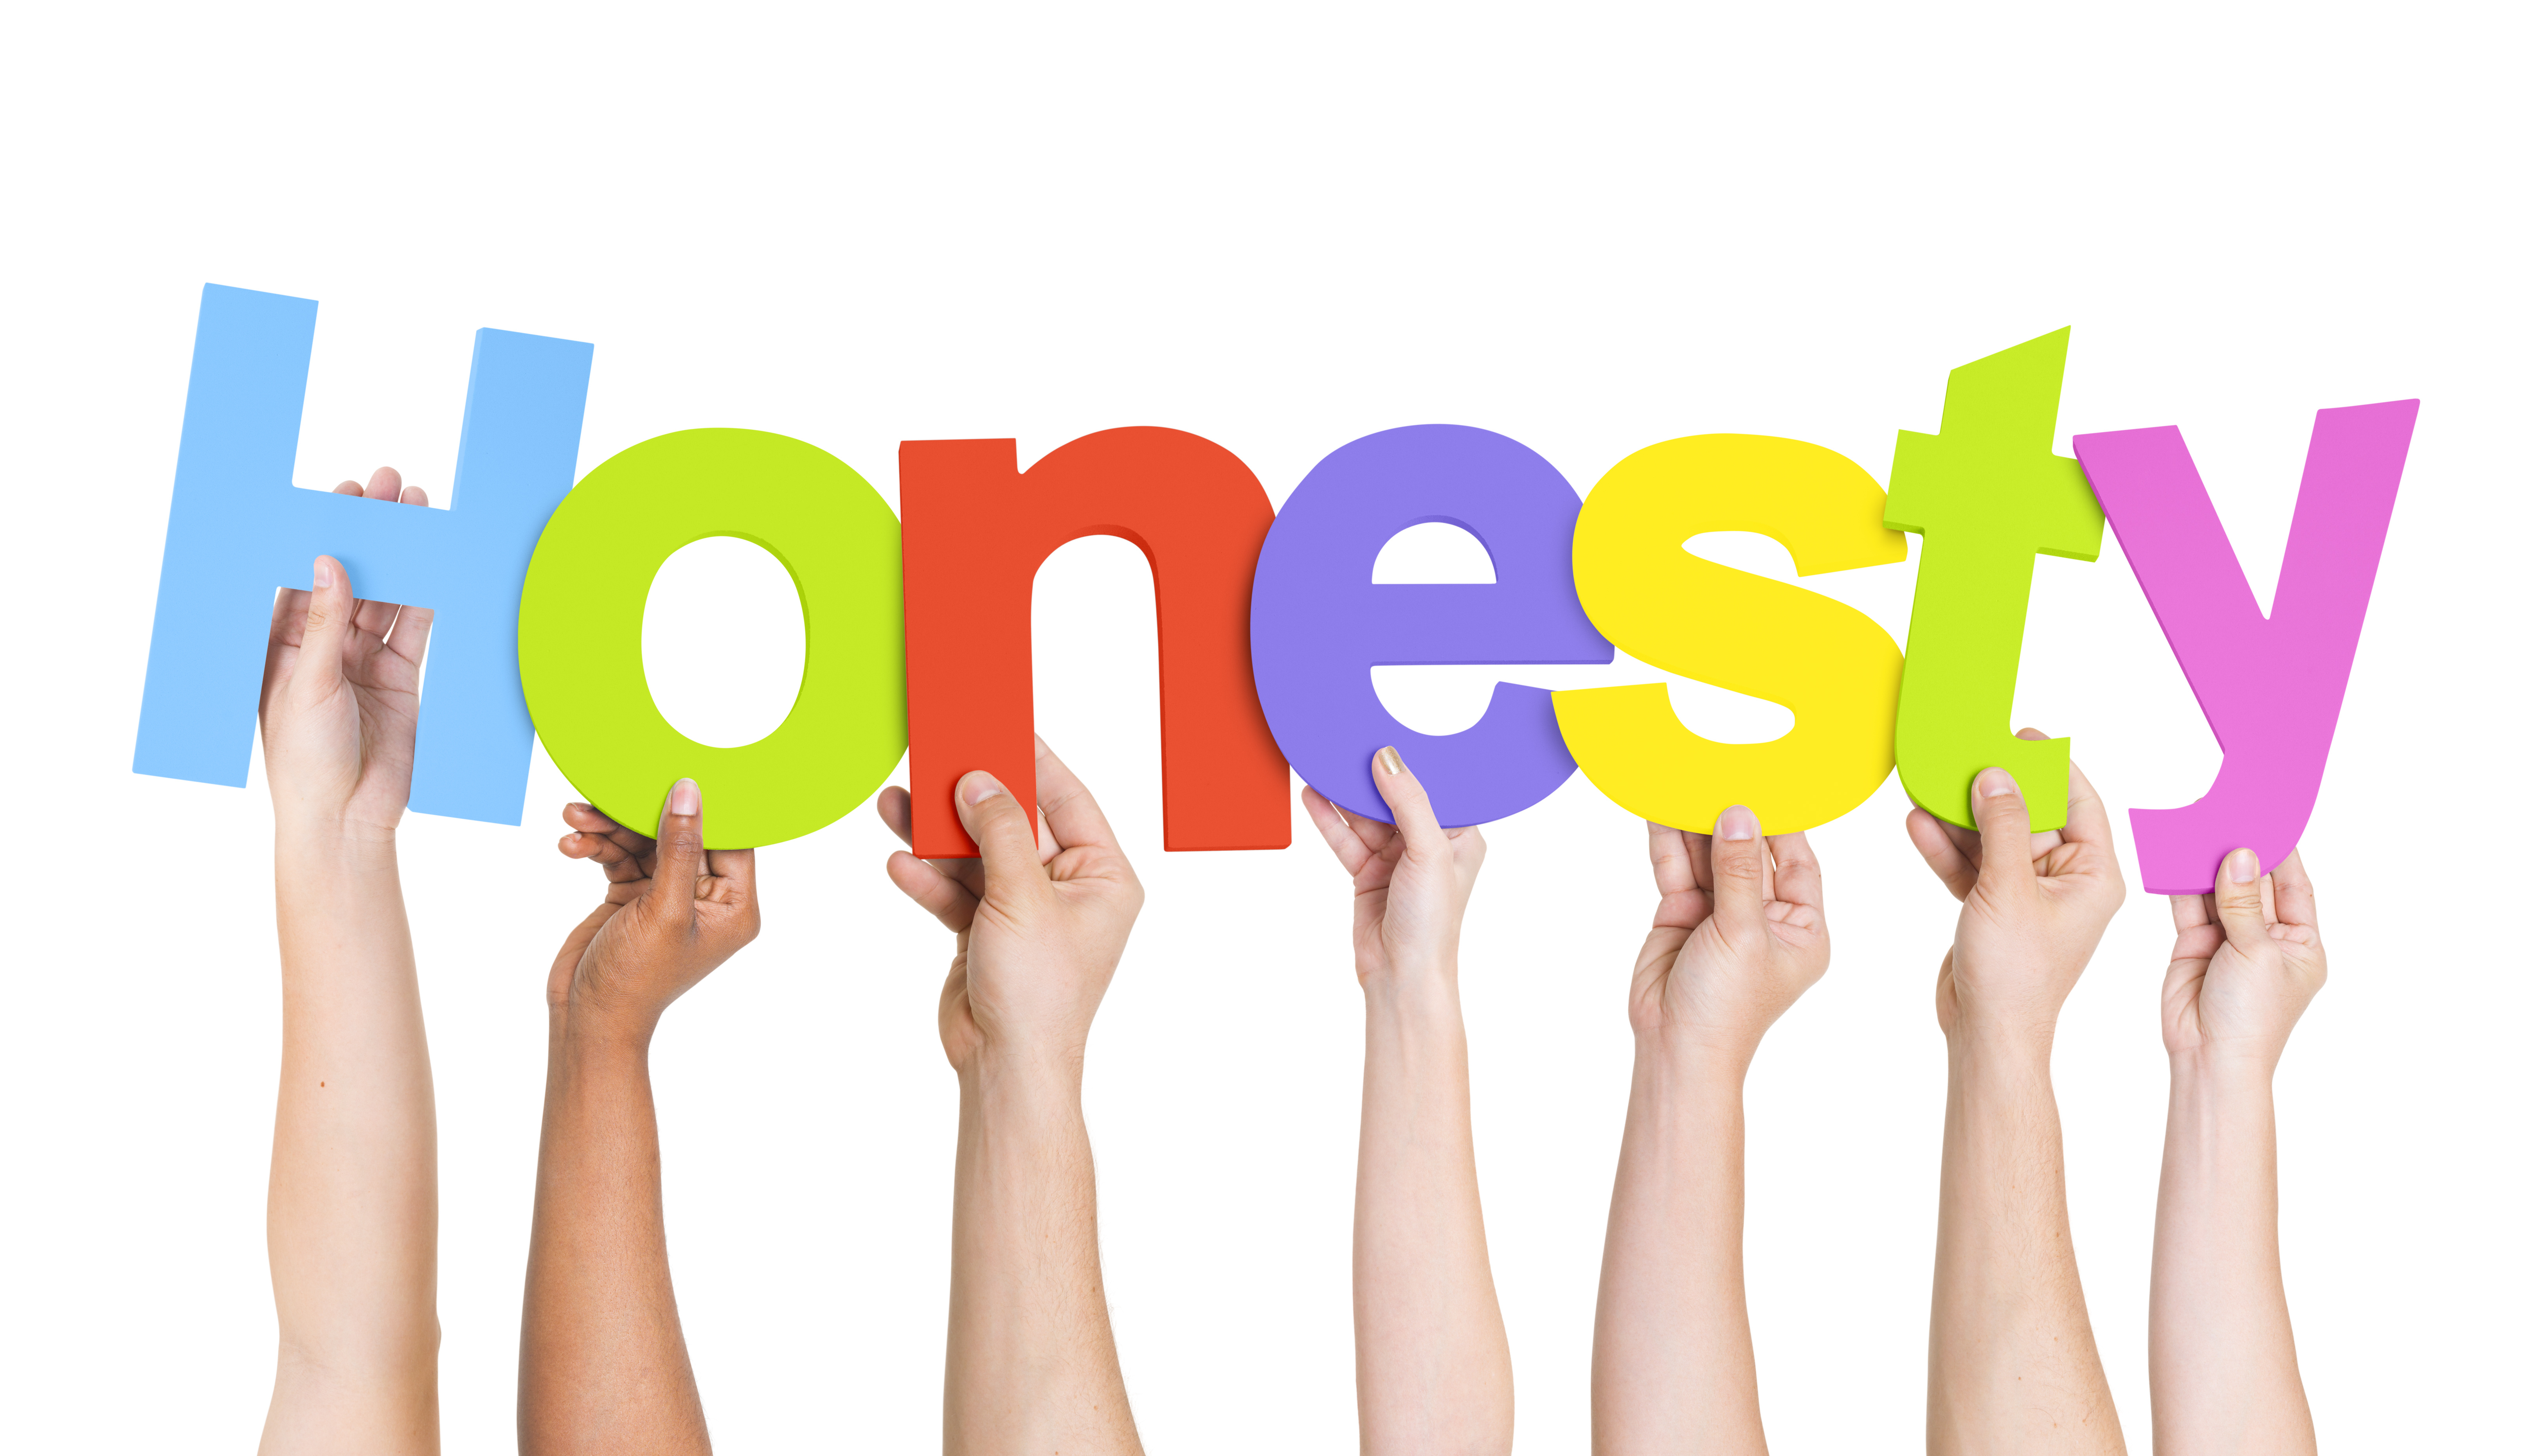 Clipart of the hands are holding honesty letters free image.